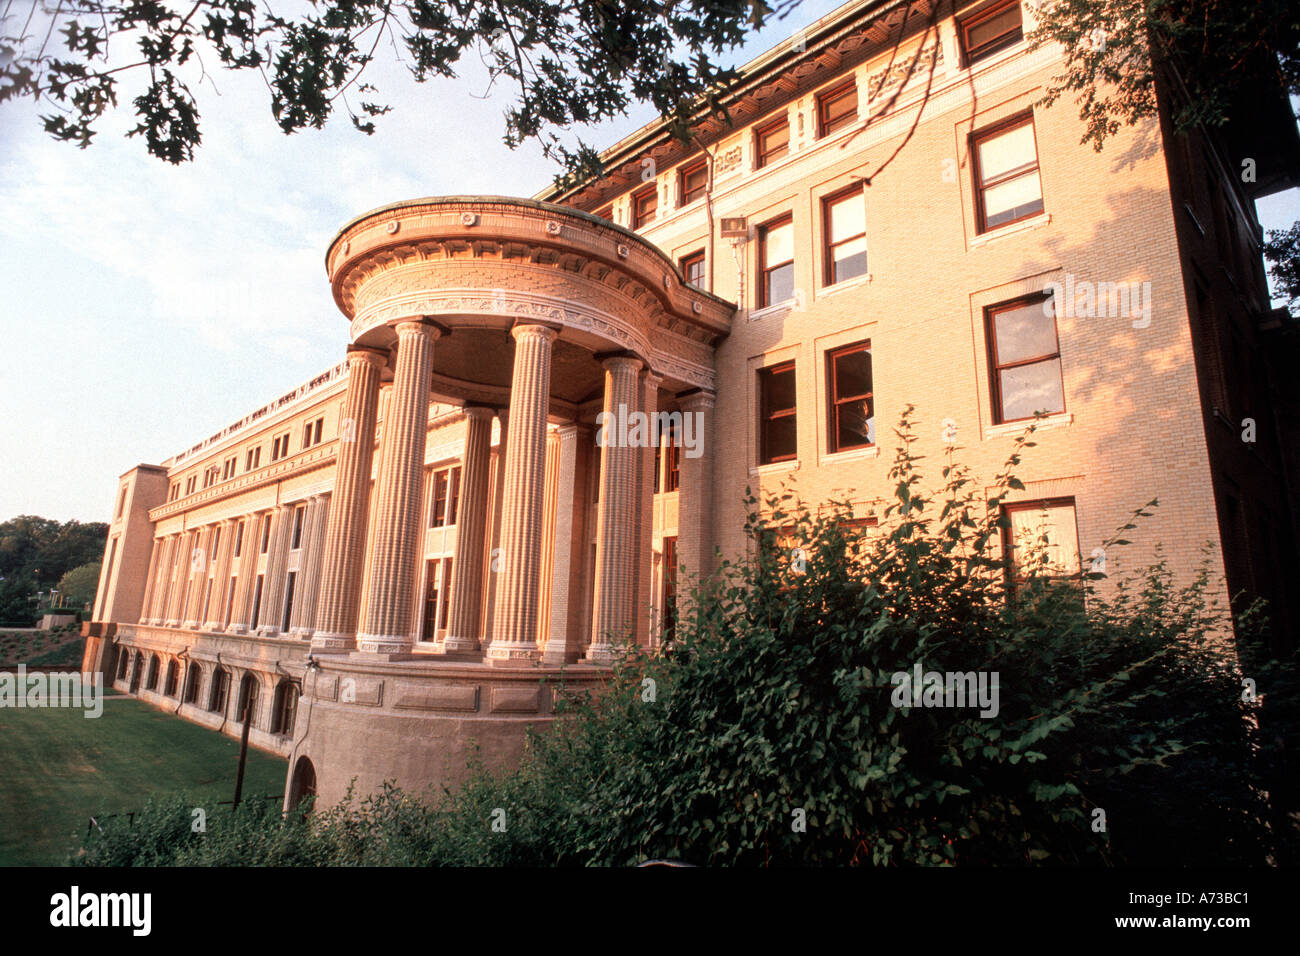 """Education, PITTSBURGH PA USA """"Carnegie Mellon University"""" """"M.M.C Building"""" with Columns in Front Stock Photo"""